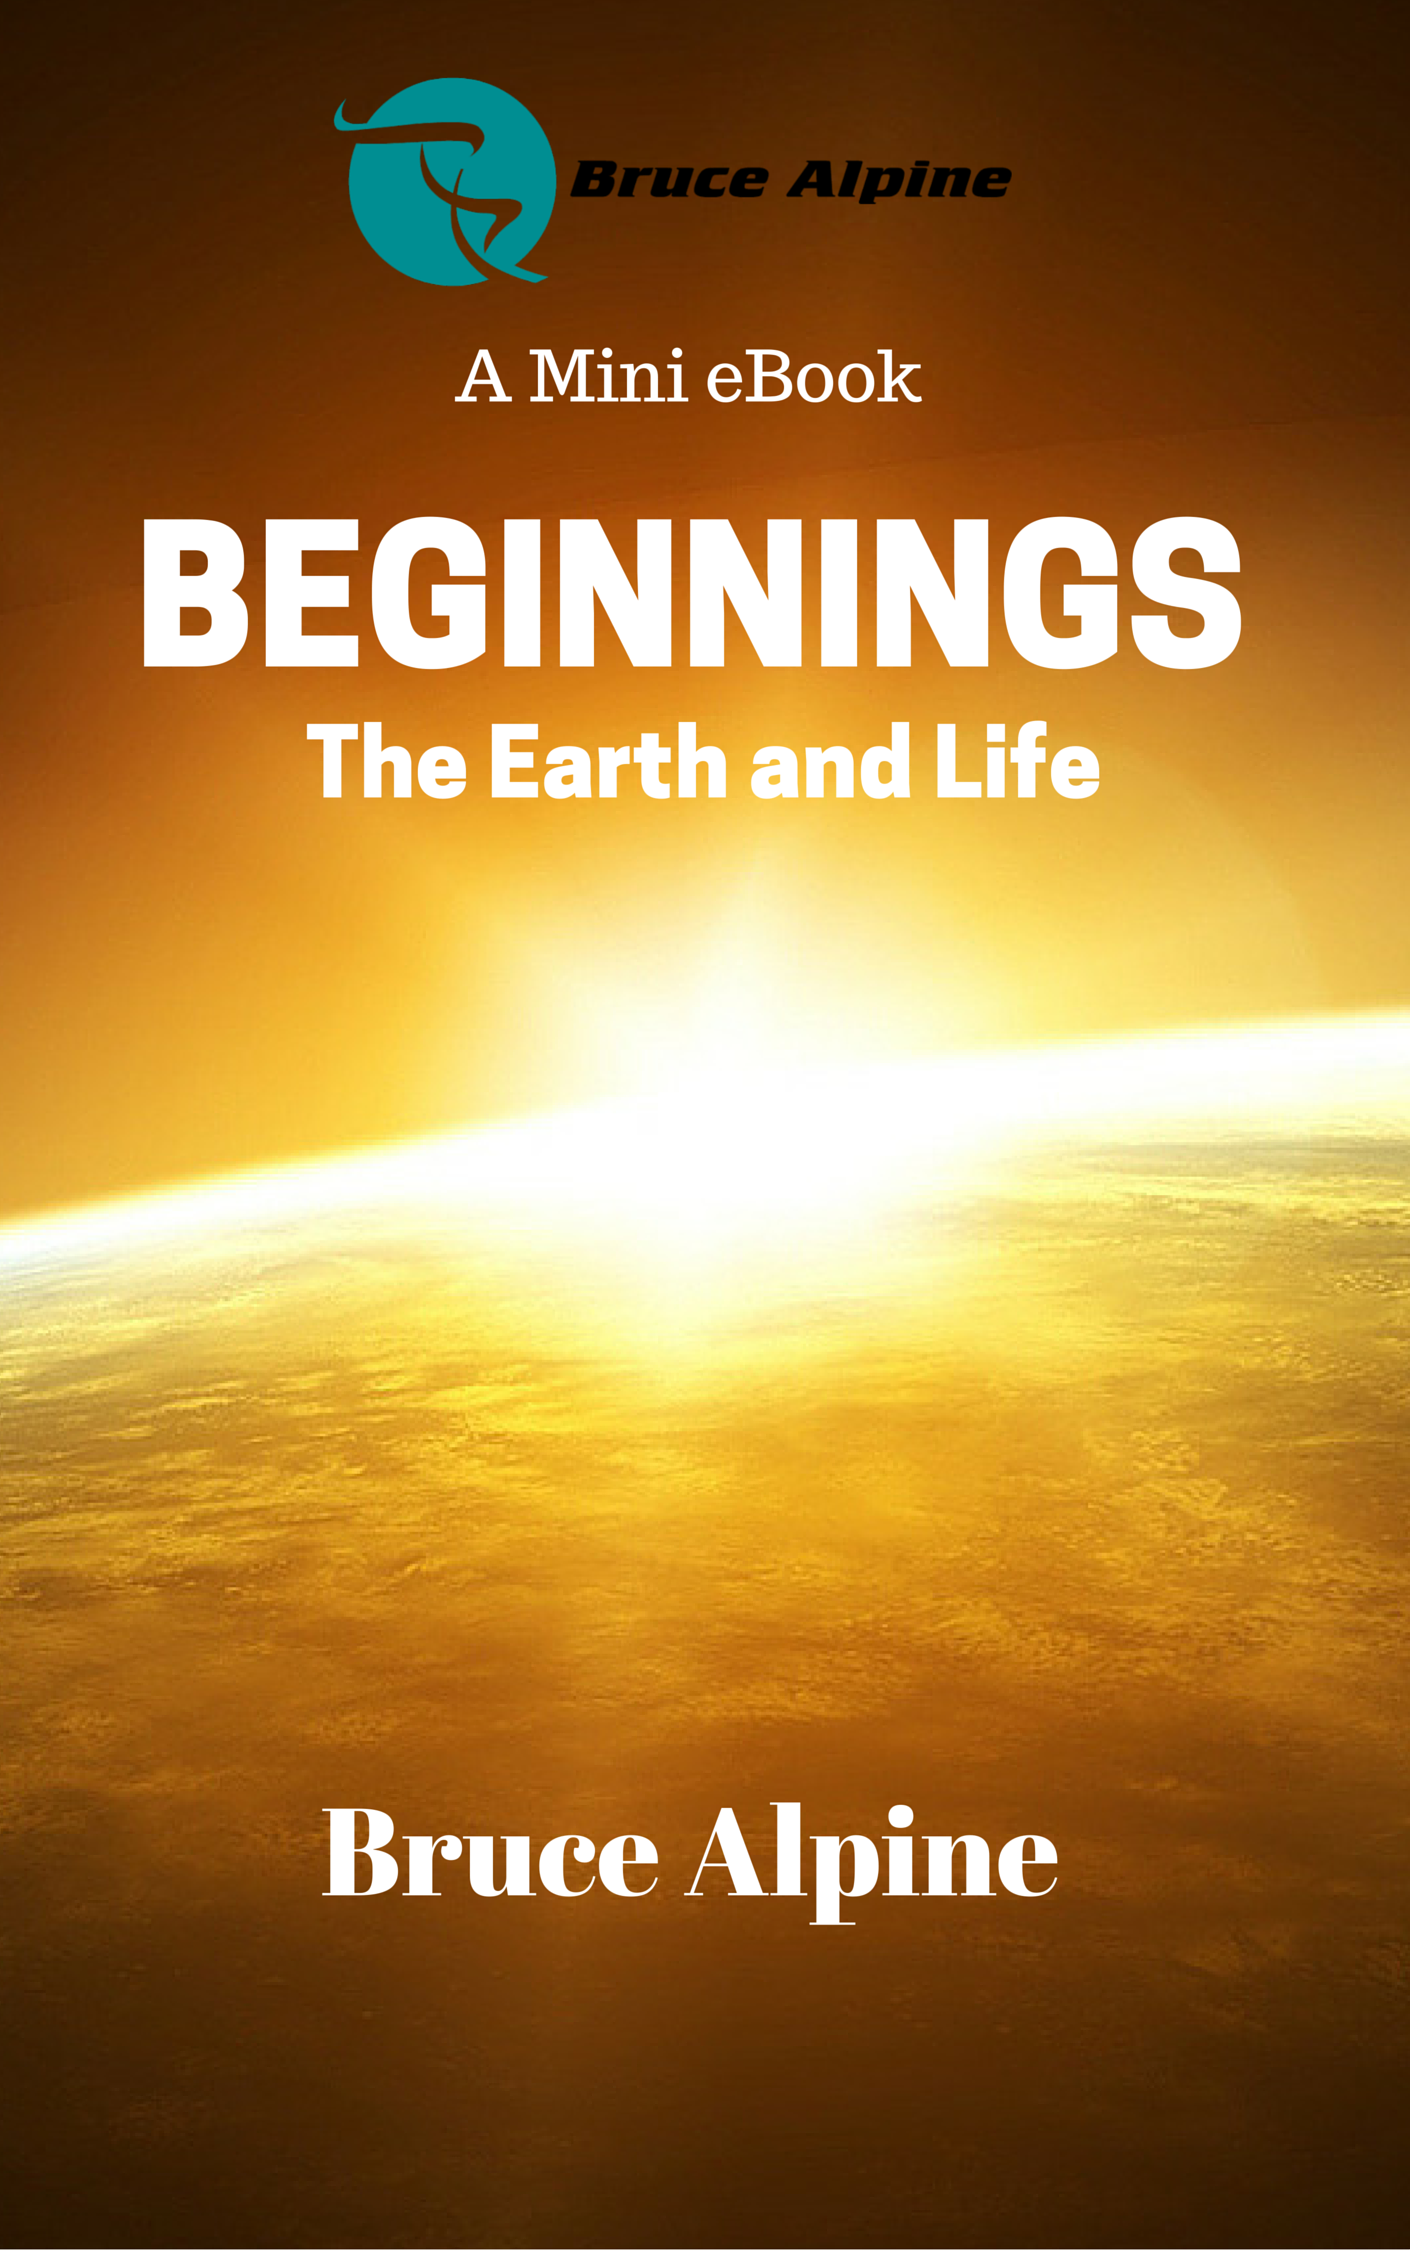 the beginnings of life in earth The origin of life on planet earth by jim schicatano the earliest evidence of life on planet earth may date as far back as 385 billion years ago 1 at that time the first simple, single-celled organisms called prokaryotes may have appeared the exact scientific process that led to the creation of prokaryotic life still eludes scientists today.